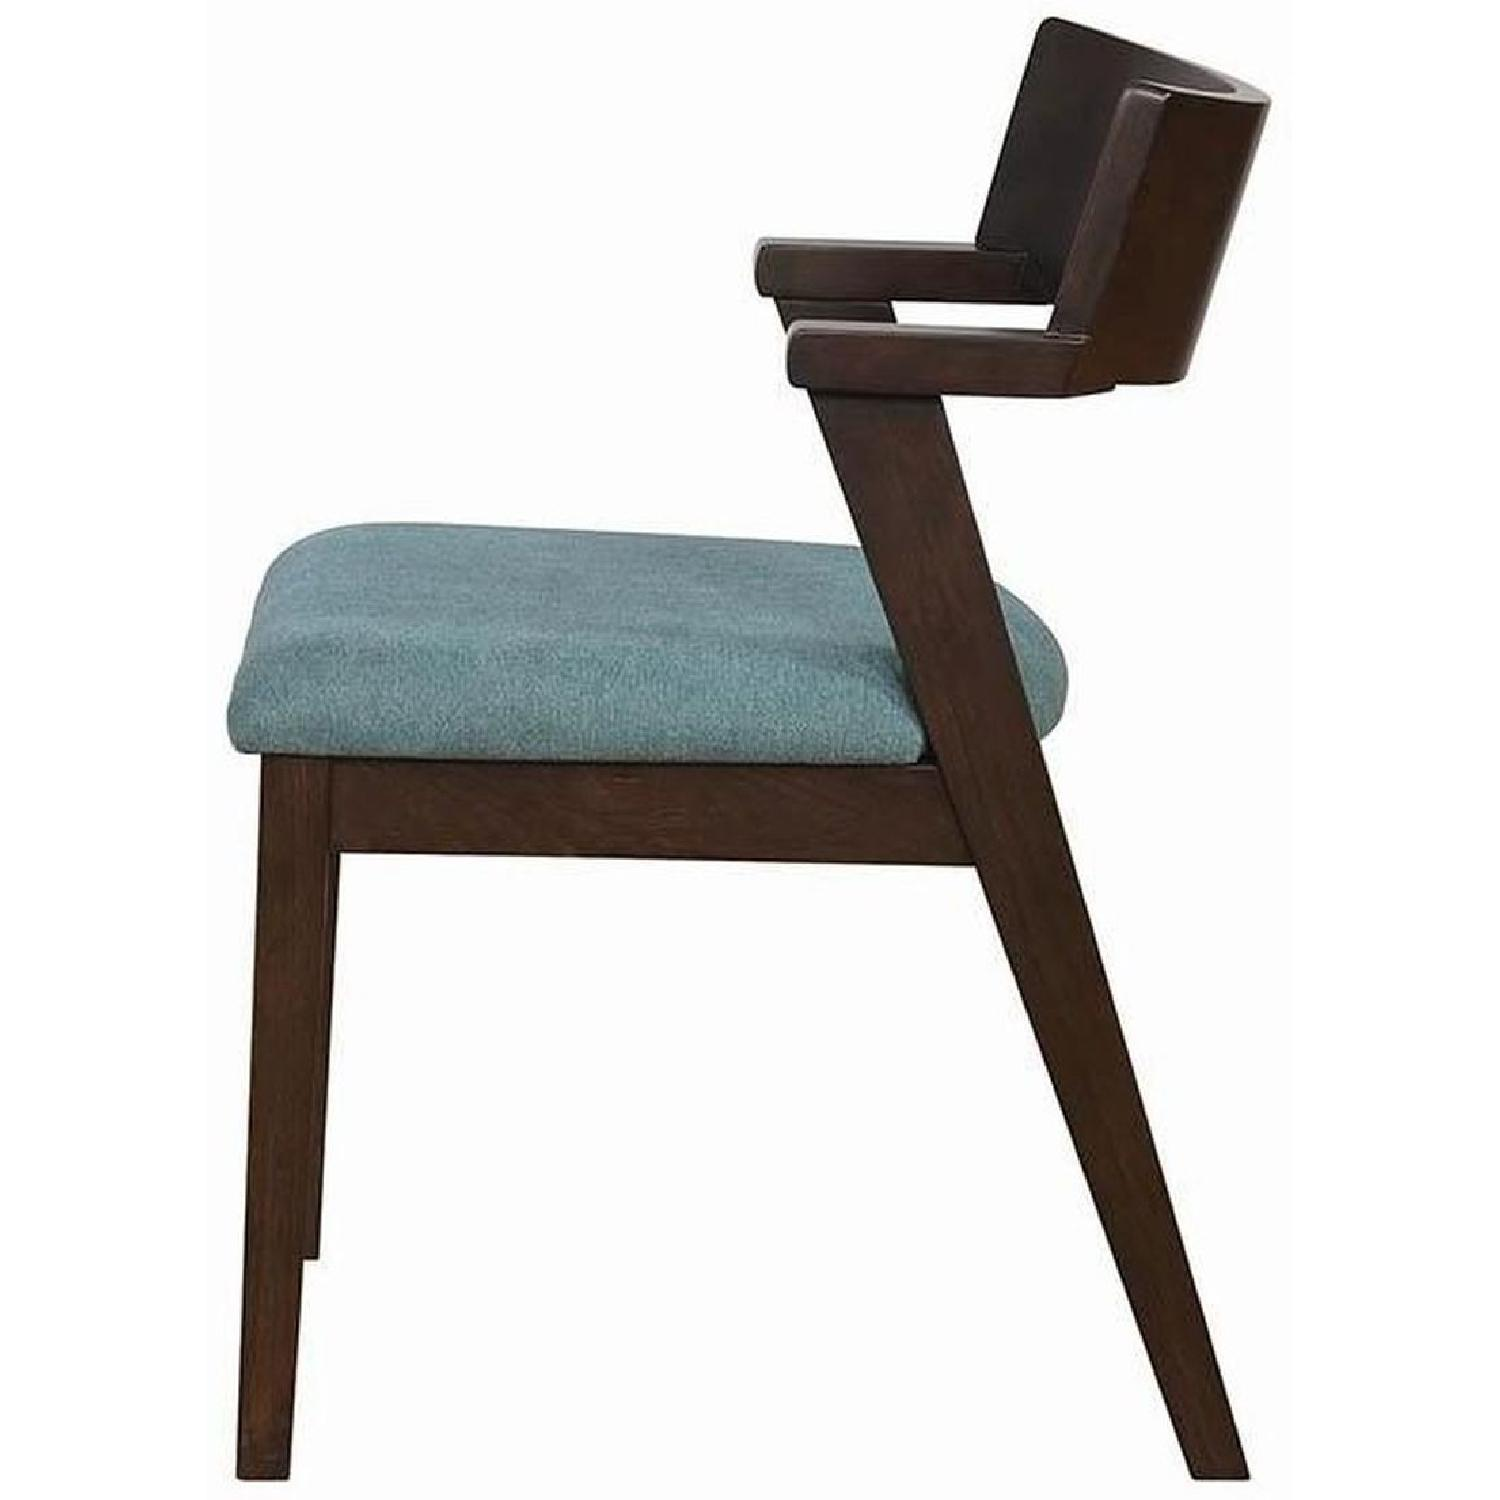 Mid Century Style Dining Chair w/ Teal Cushioned Seat - image-1